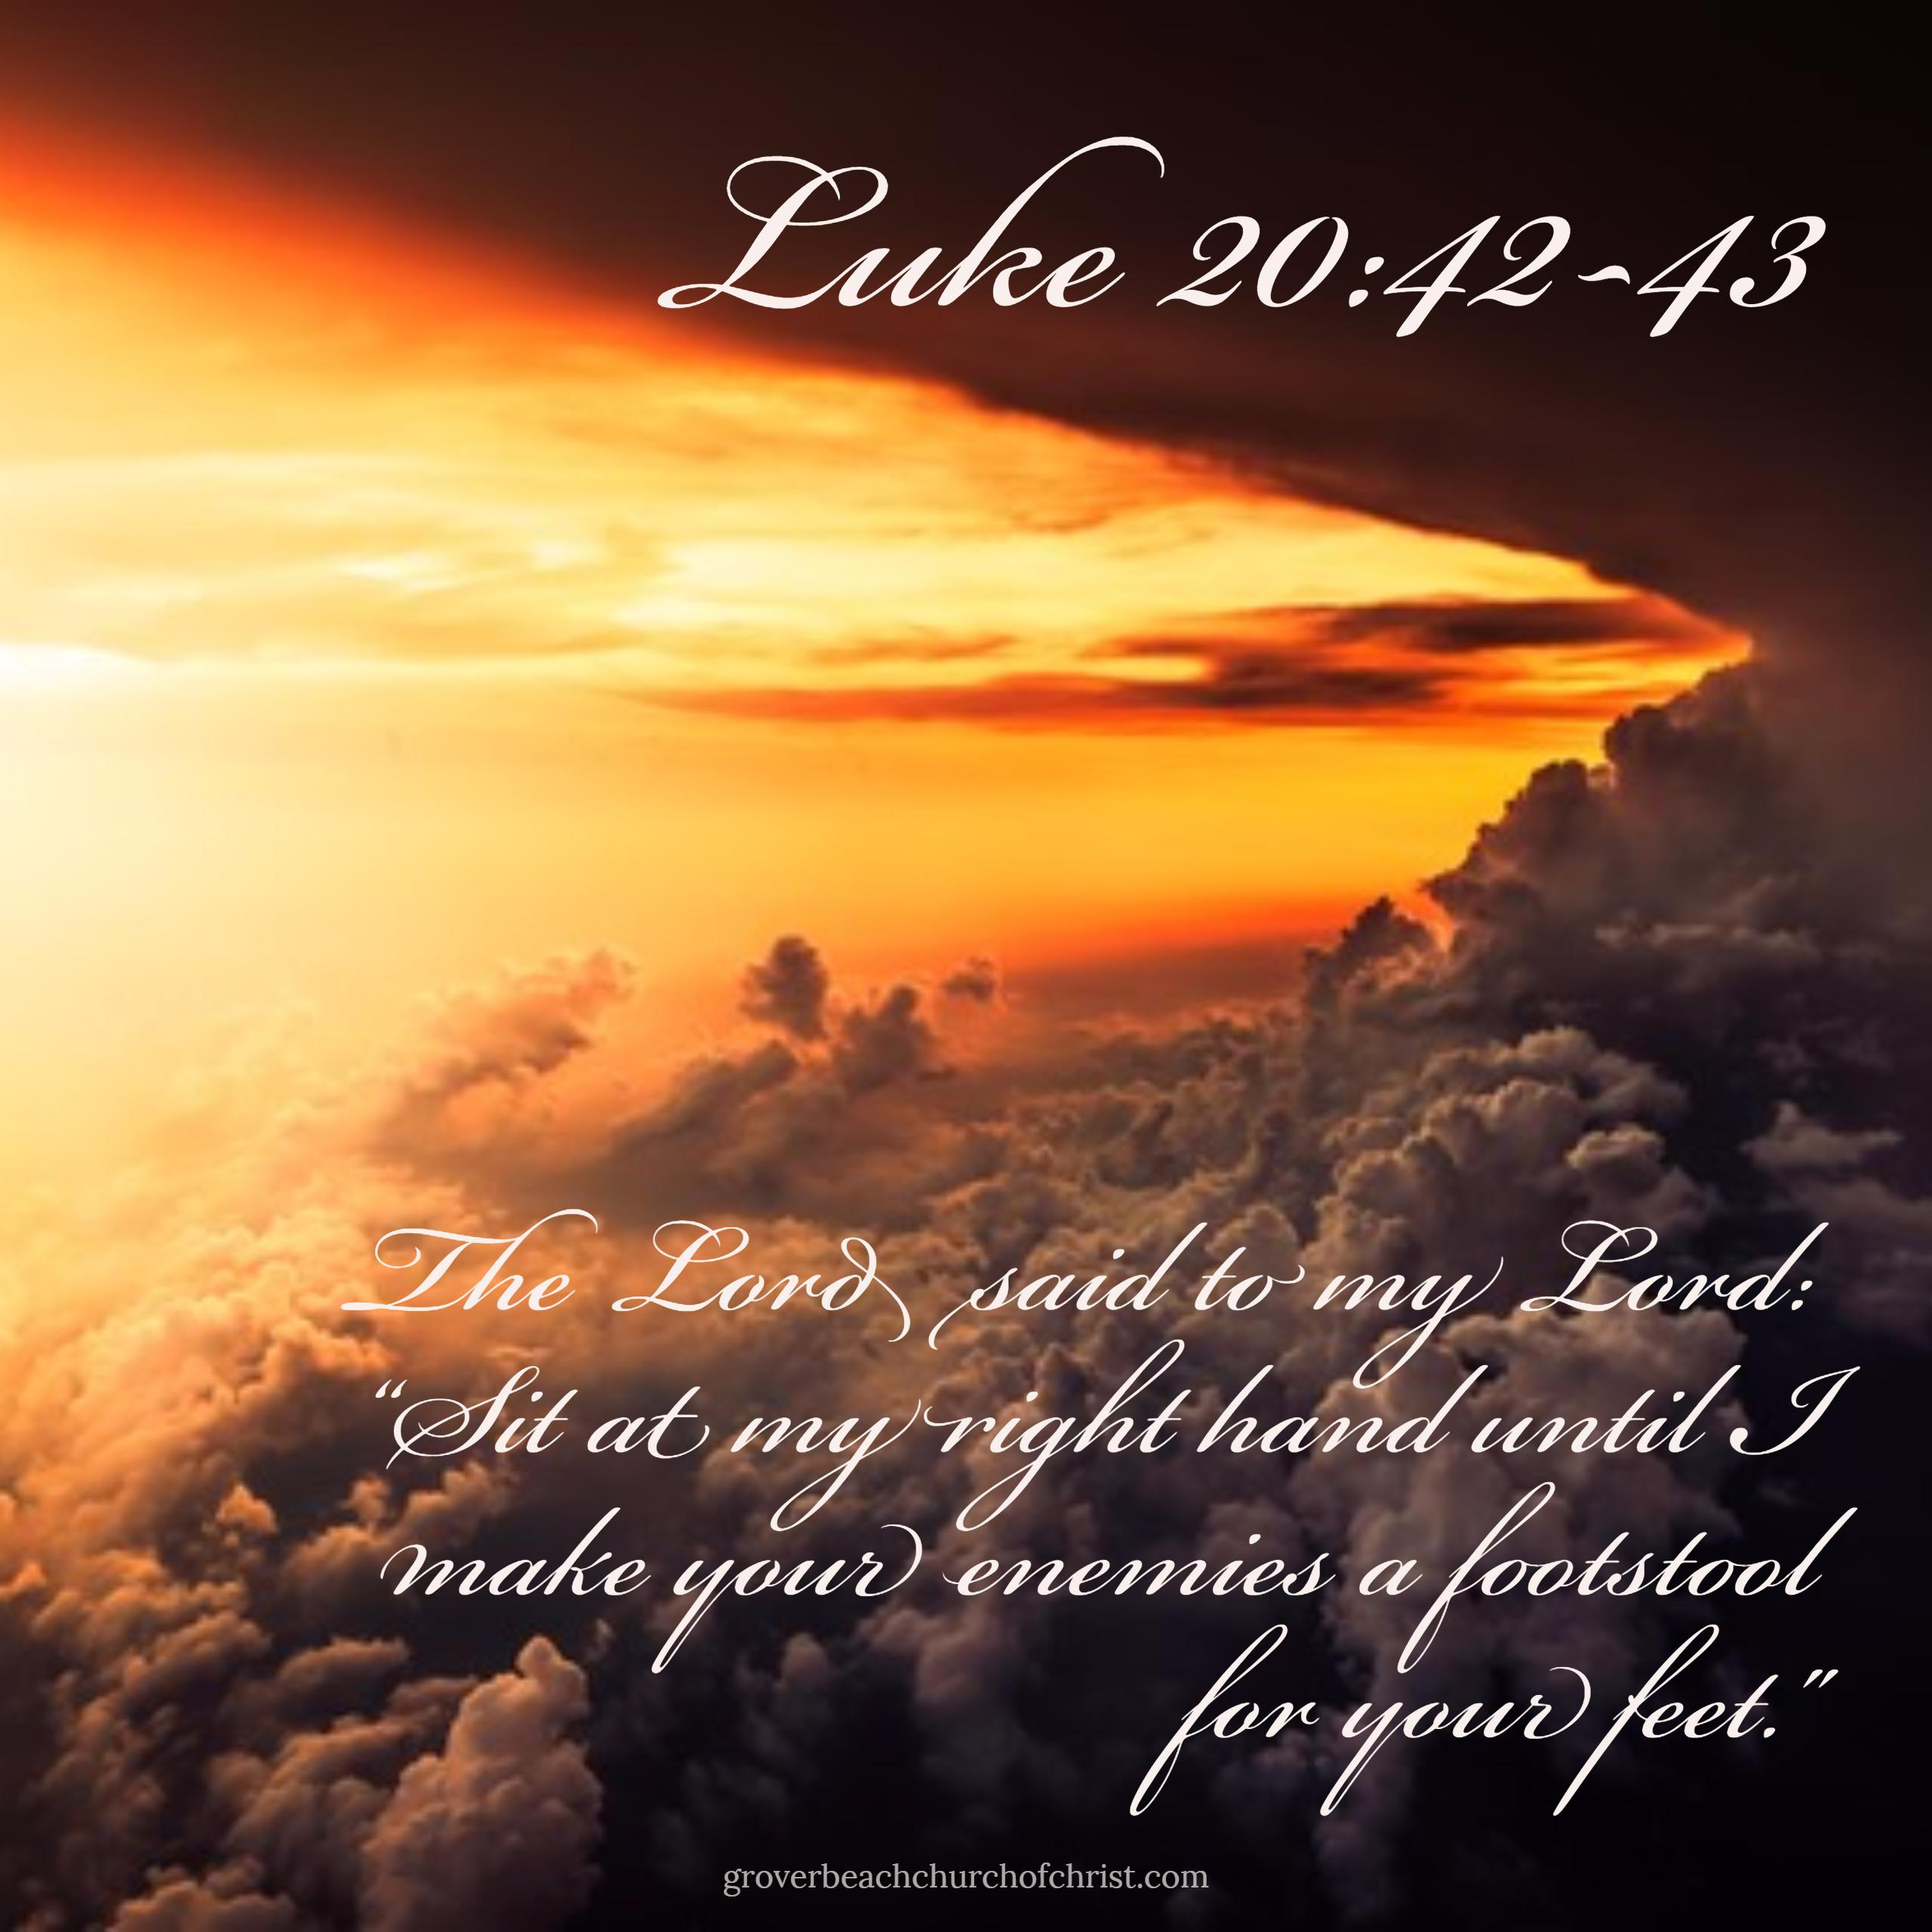 Luke 20-42,43 The Lord said to my Lord